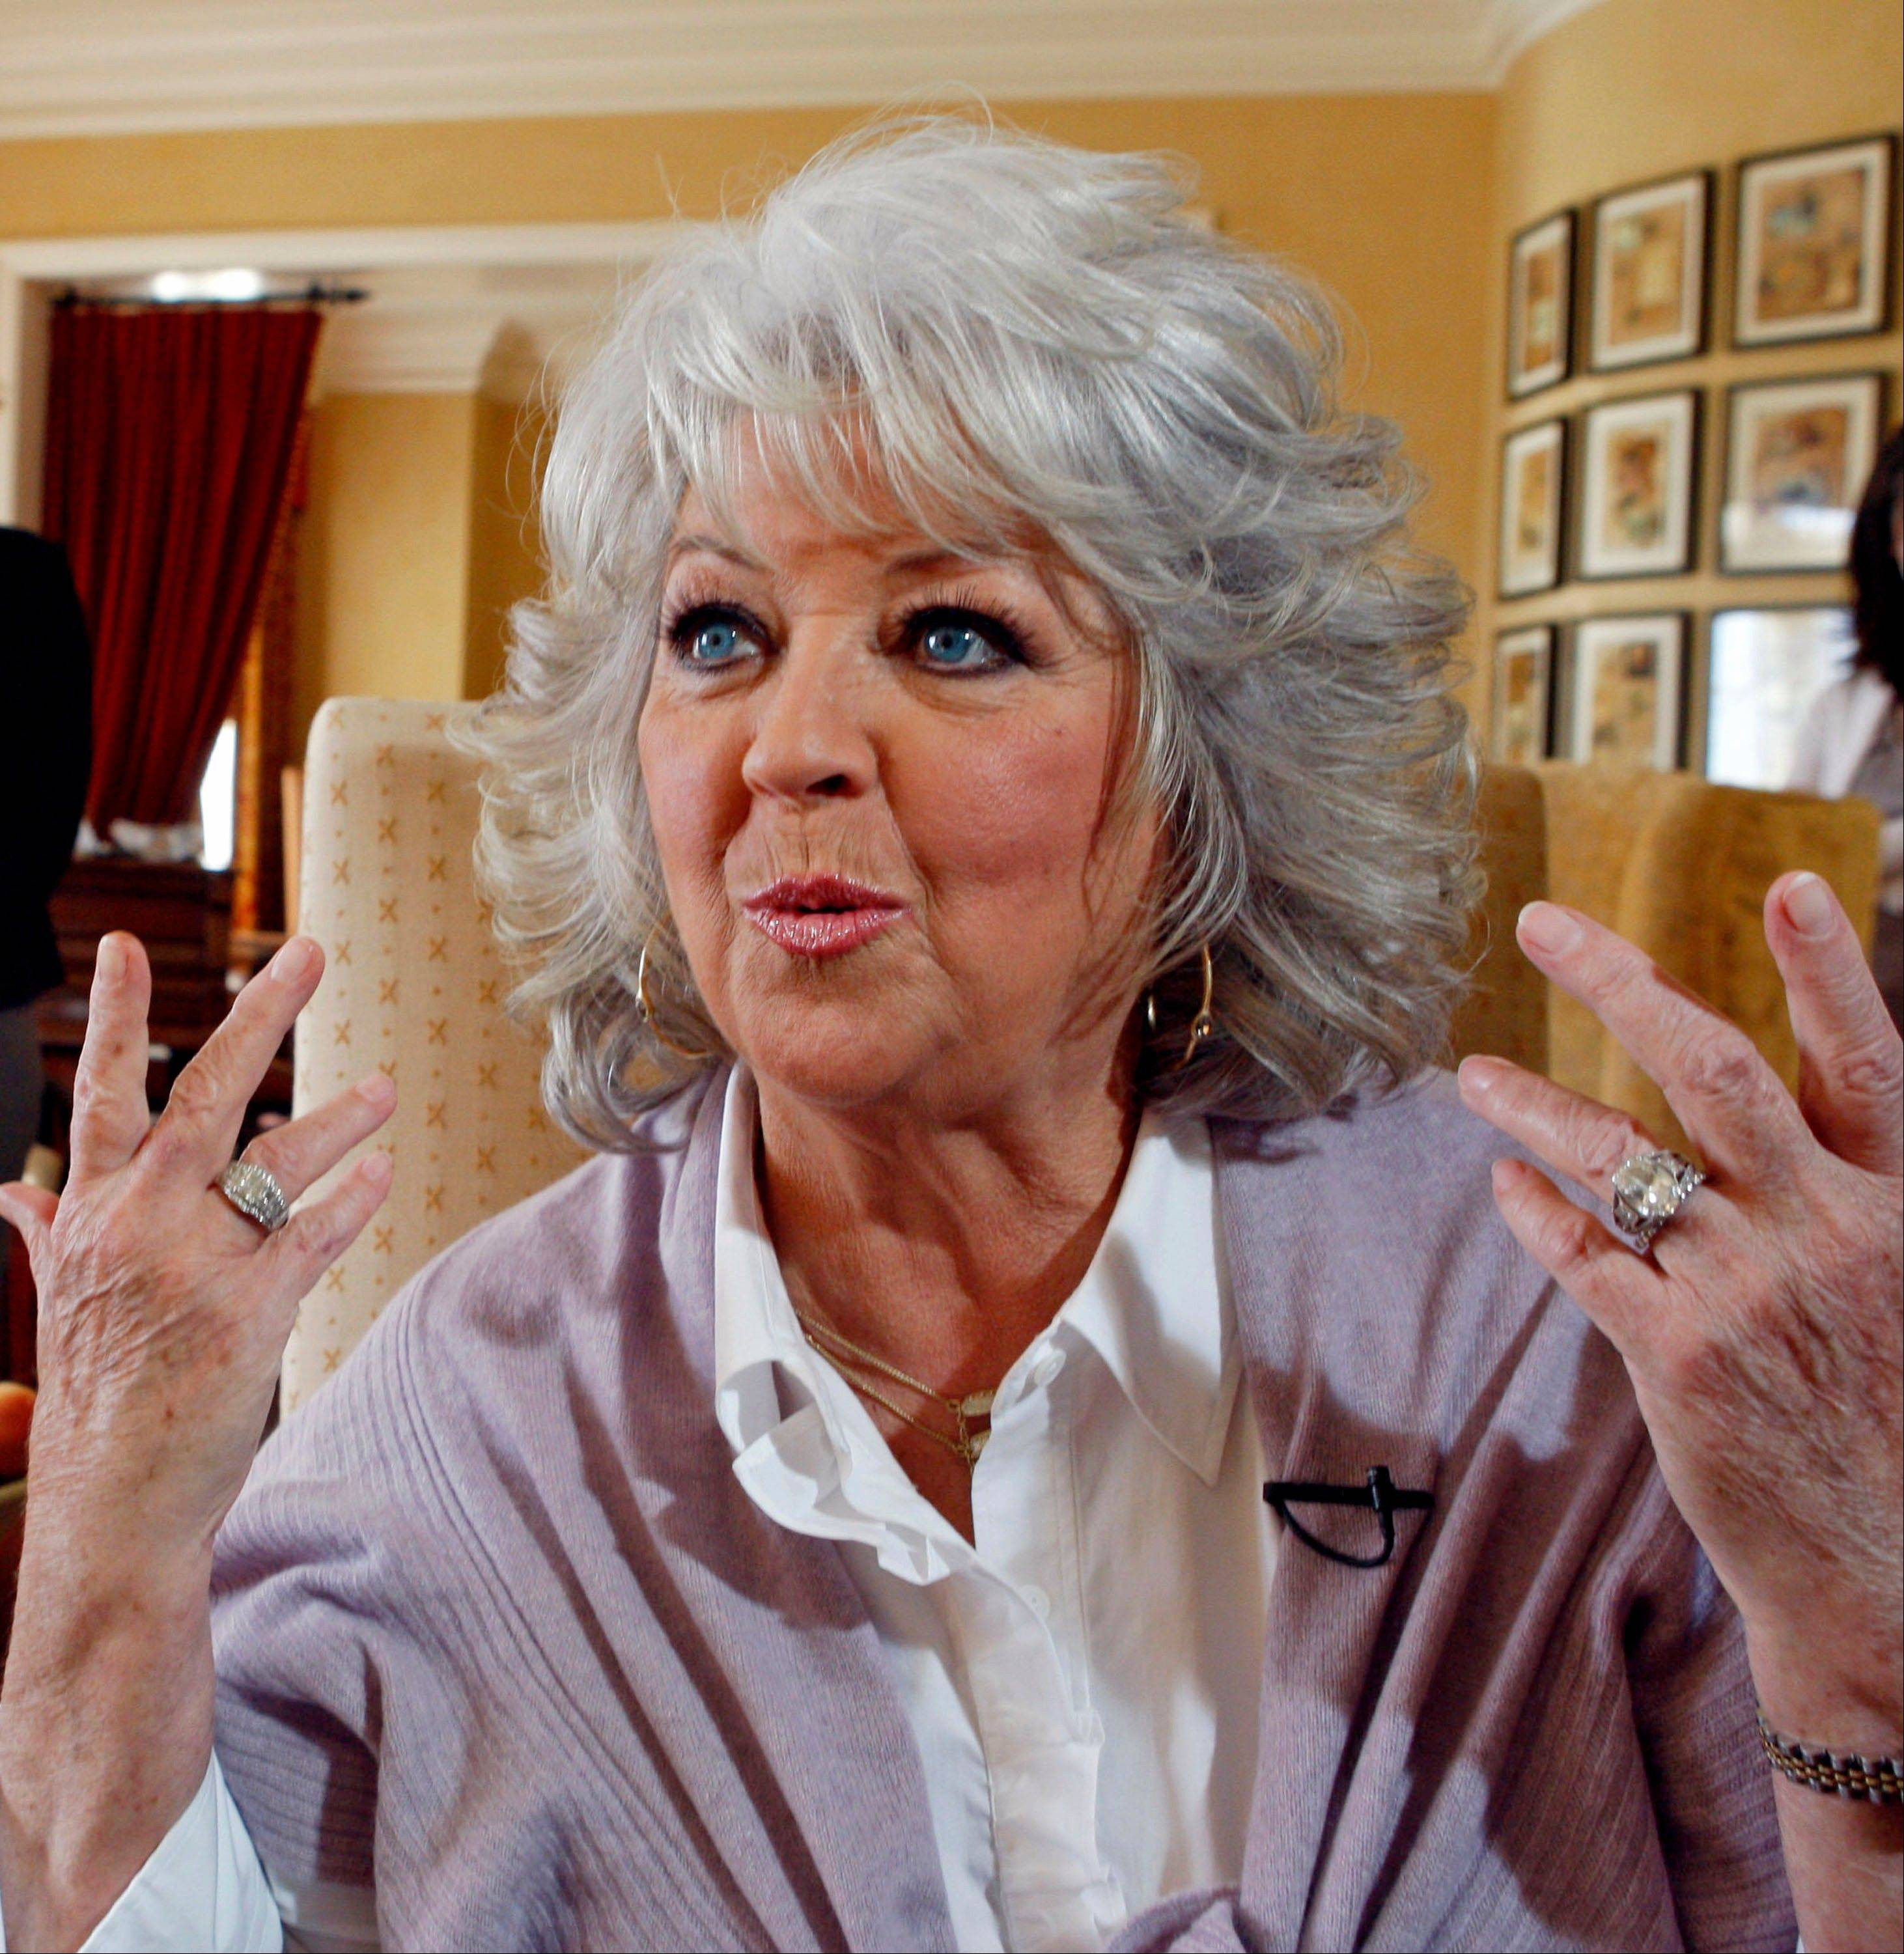 Southern celebrity chef Paula Deen is trying to move past revelations that she used racial slurs in the past.